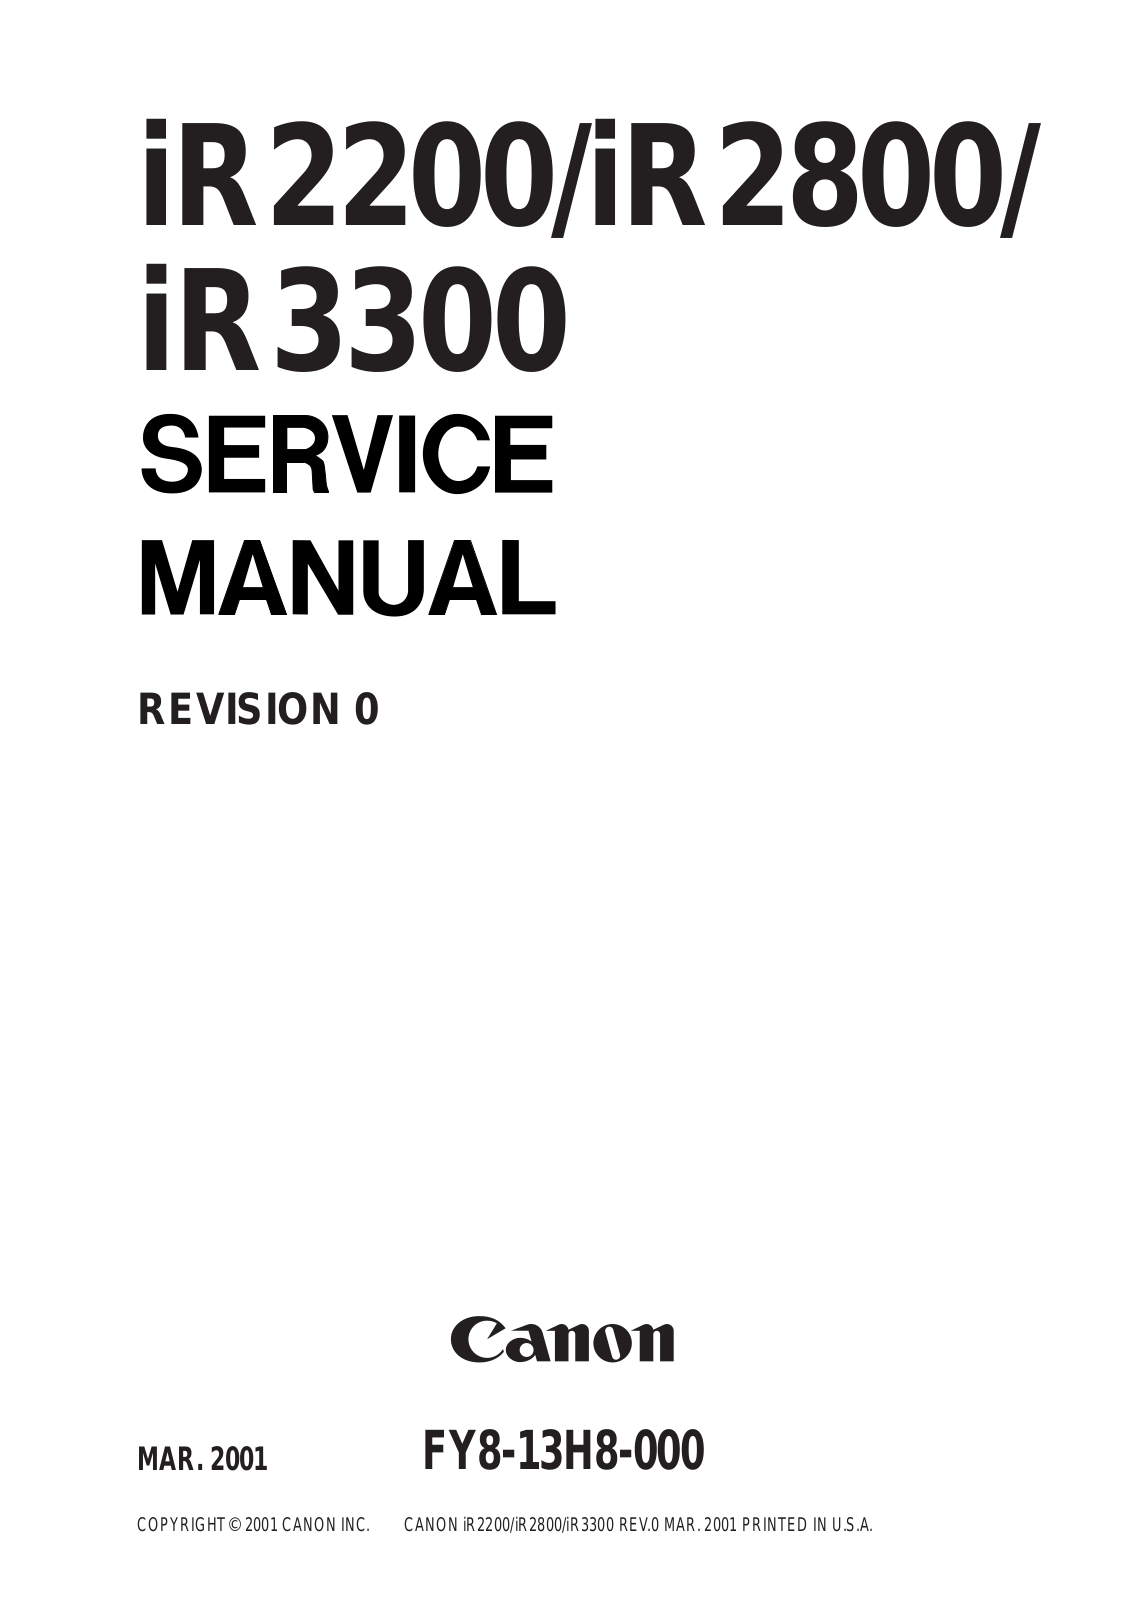 Canon IR2200, IR2800, IR3300 User Manual 2